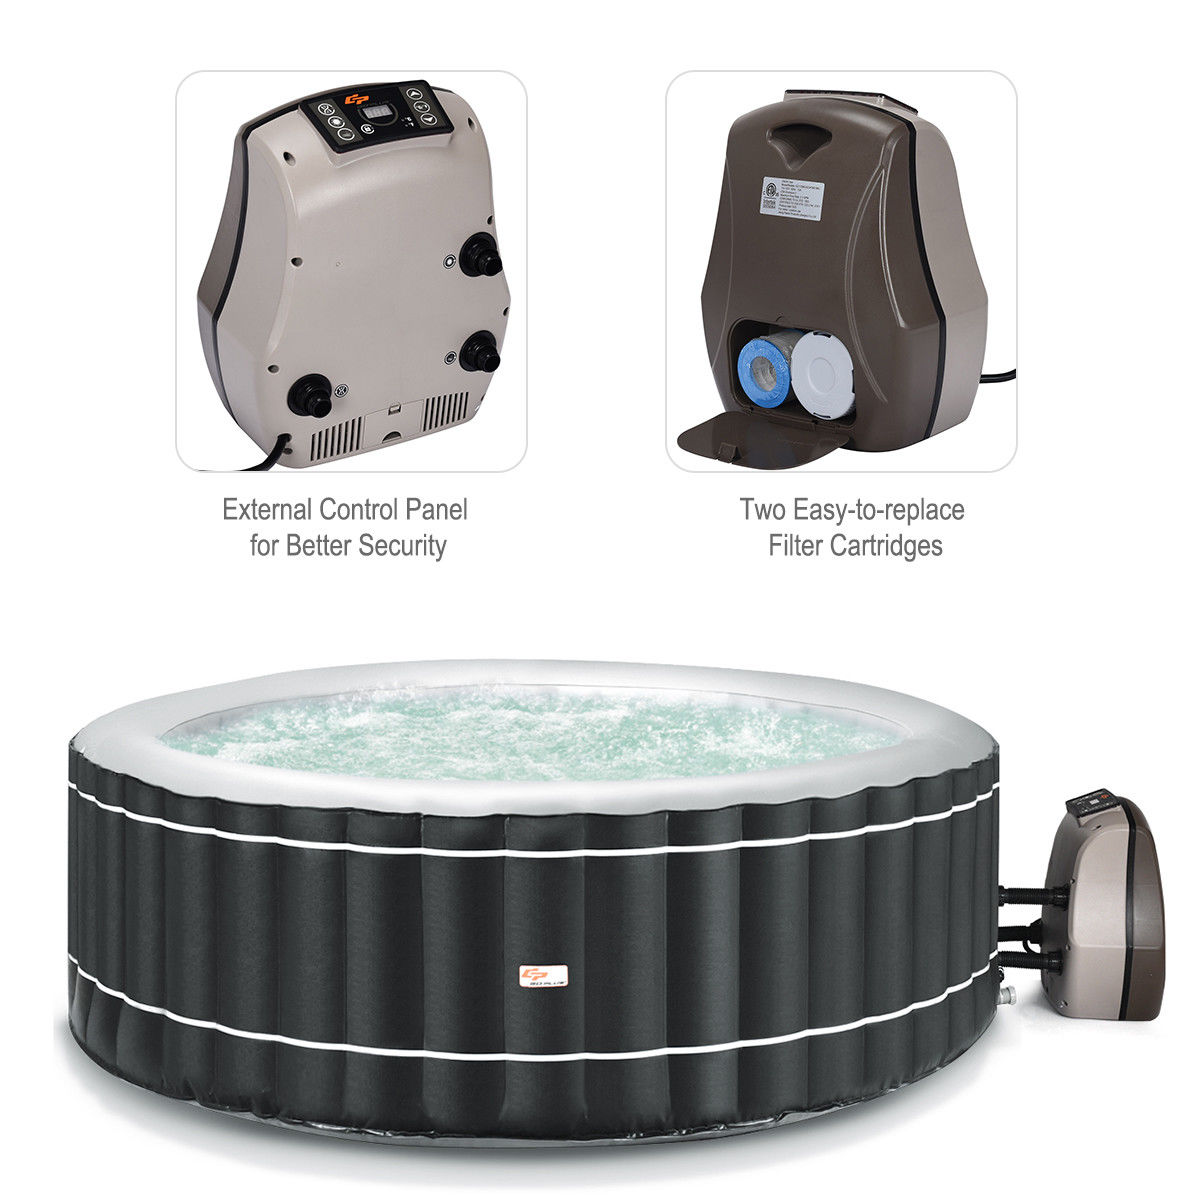 4-Person Inflatable Hot Tub Portable Outdoor Bubble Jet Leisure Massage Spa Gray - image 1 of 8